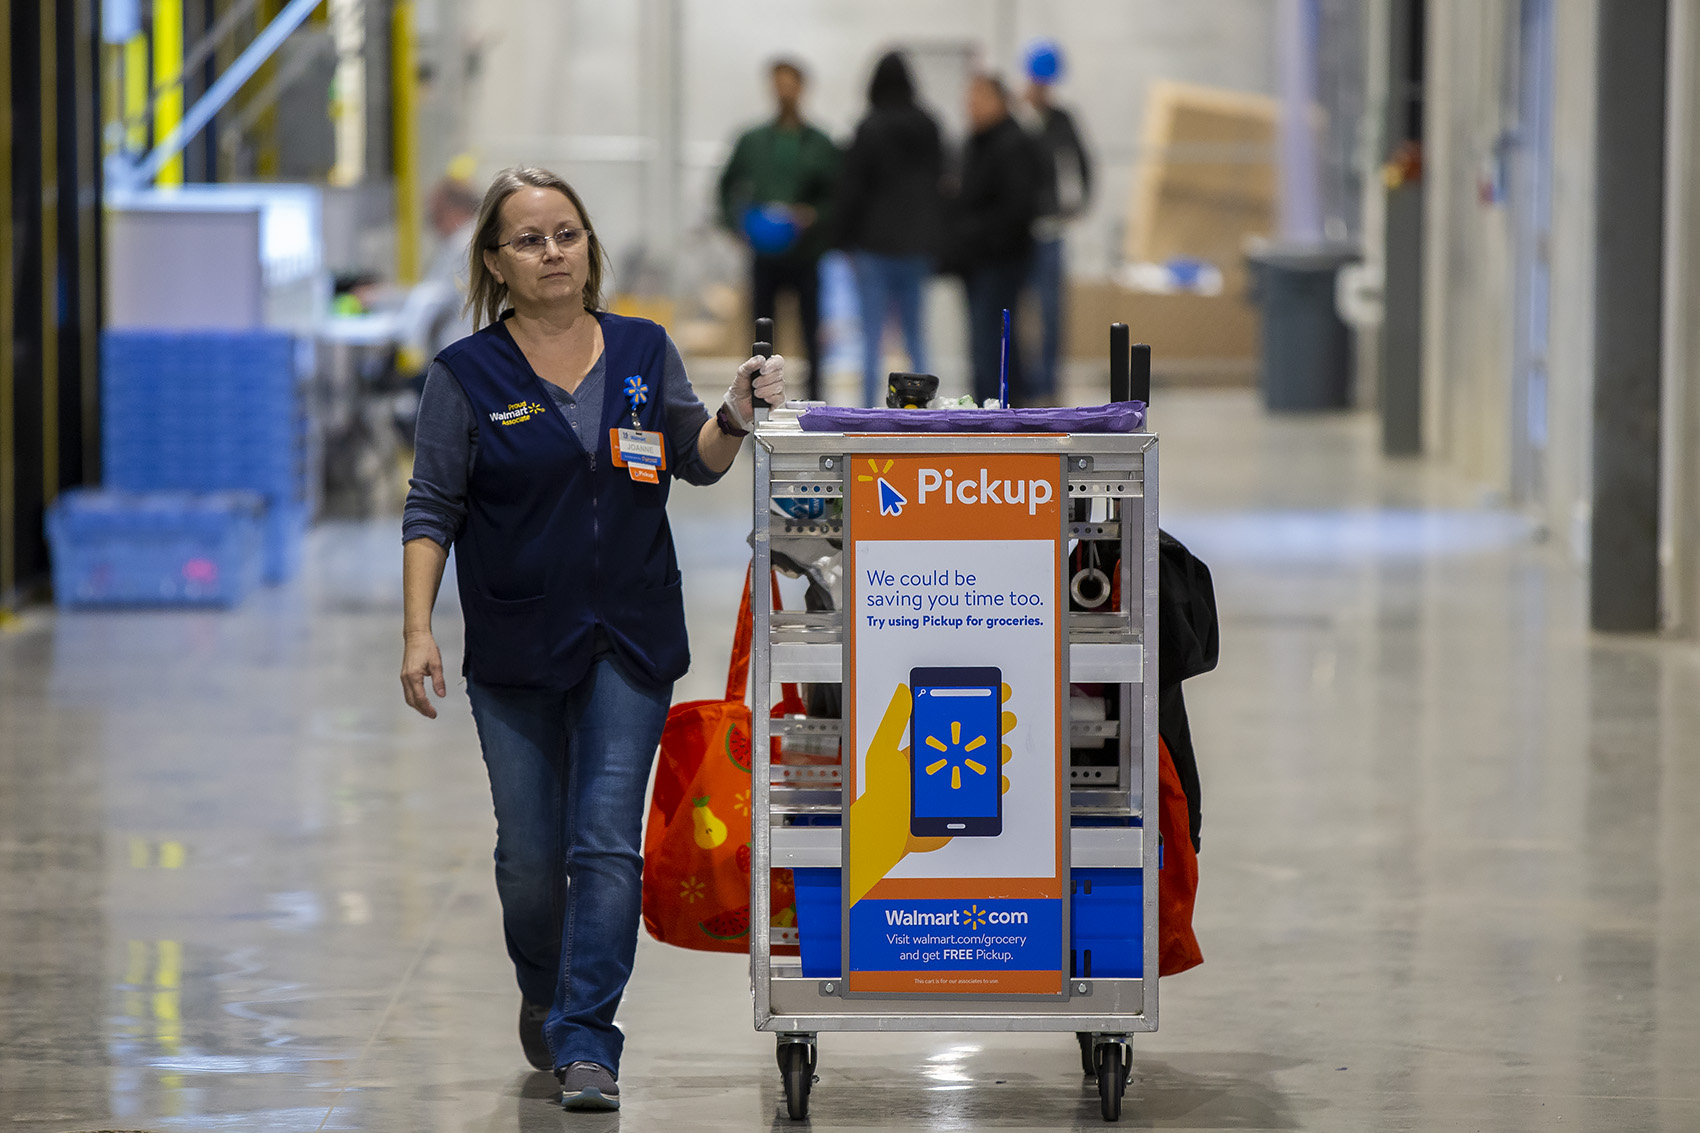 Beyond Self-Check Out: How Grocery Stores Are Incorporating Tech